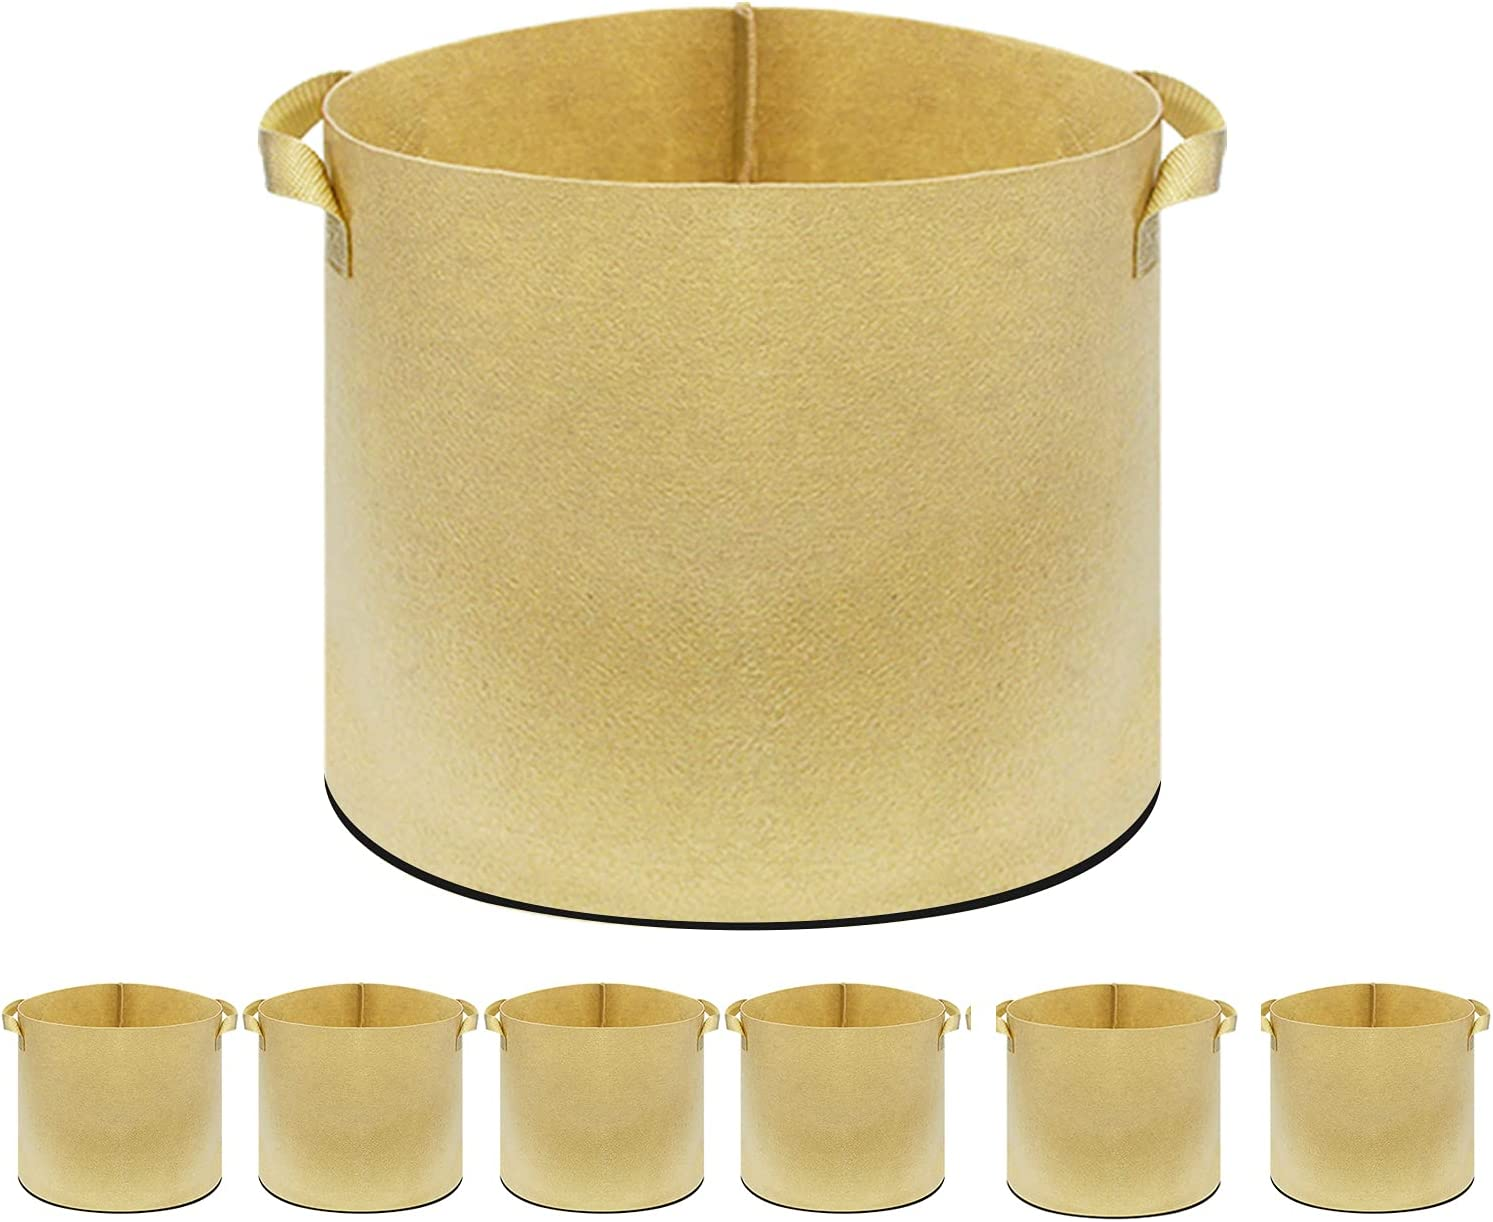 AIXI HOME 6 Pack 100Gallon Grow Ranking TOP10 New arrival Aeration Bags Fabr Tan Nonwoven